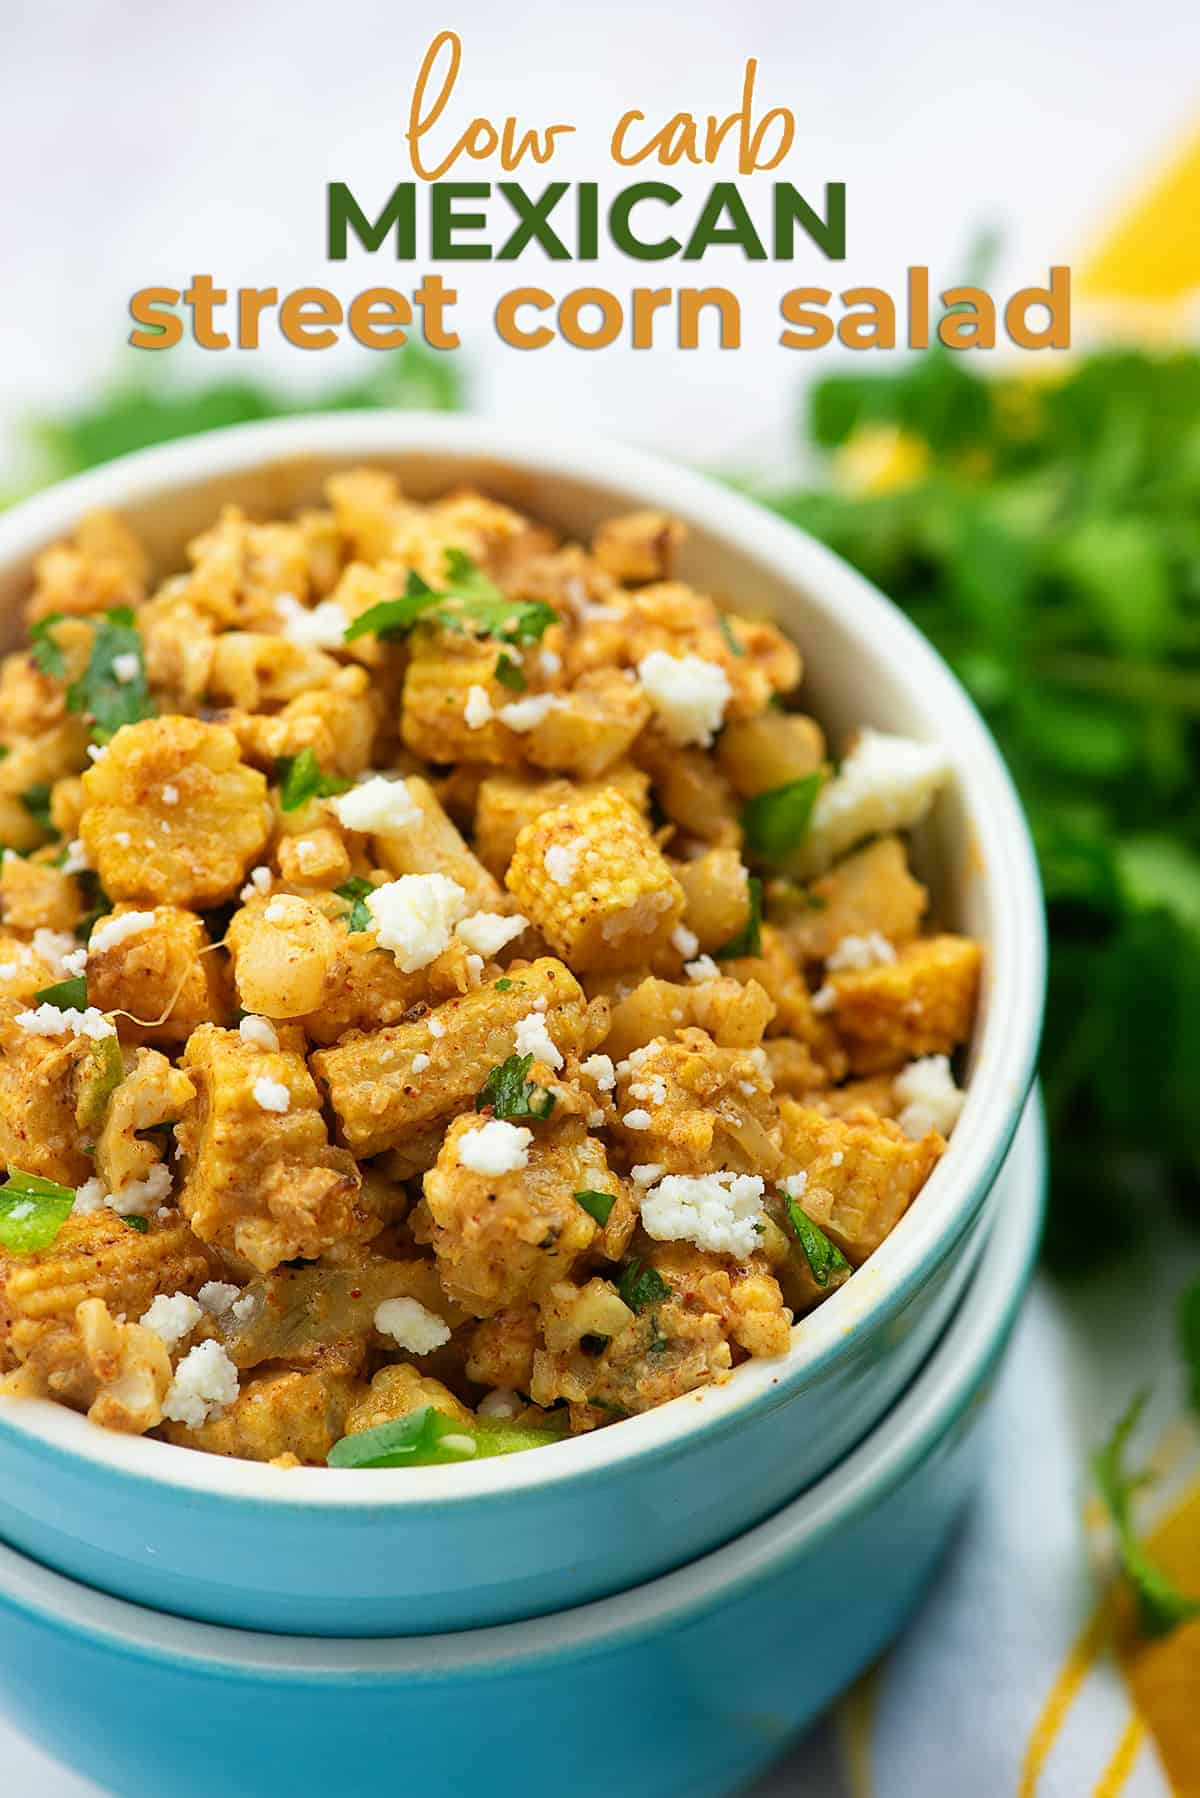 low carb Mexican street corn salad in blue bowls